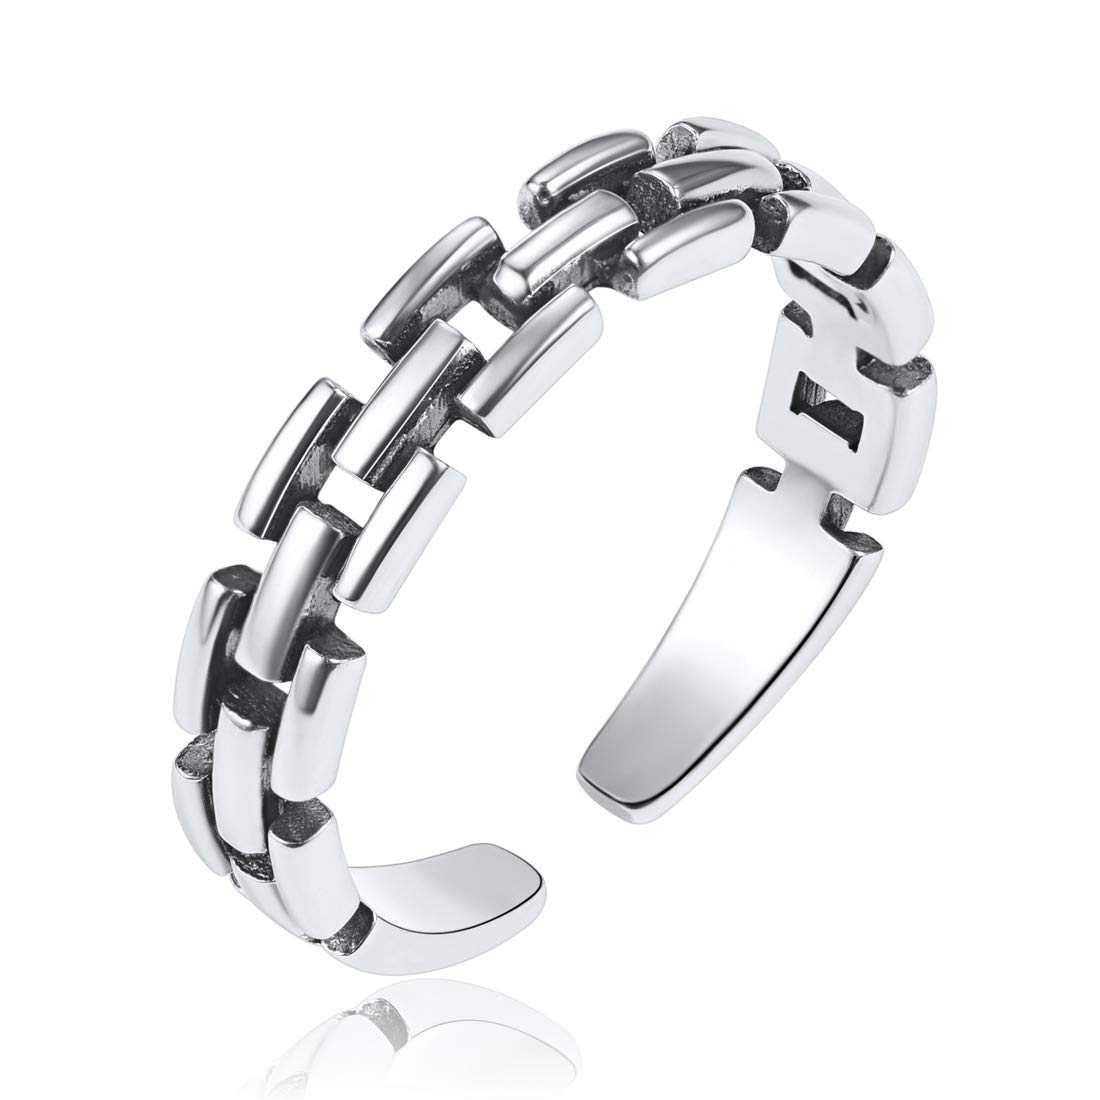 ChicSilver 925 Sterling Silver Stackable Rings Square Open Adjustable Cuff Wide Band Ring for Women Men